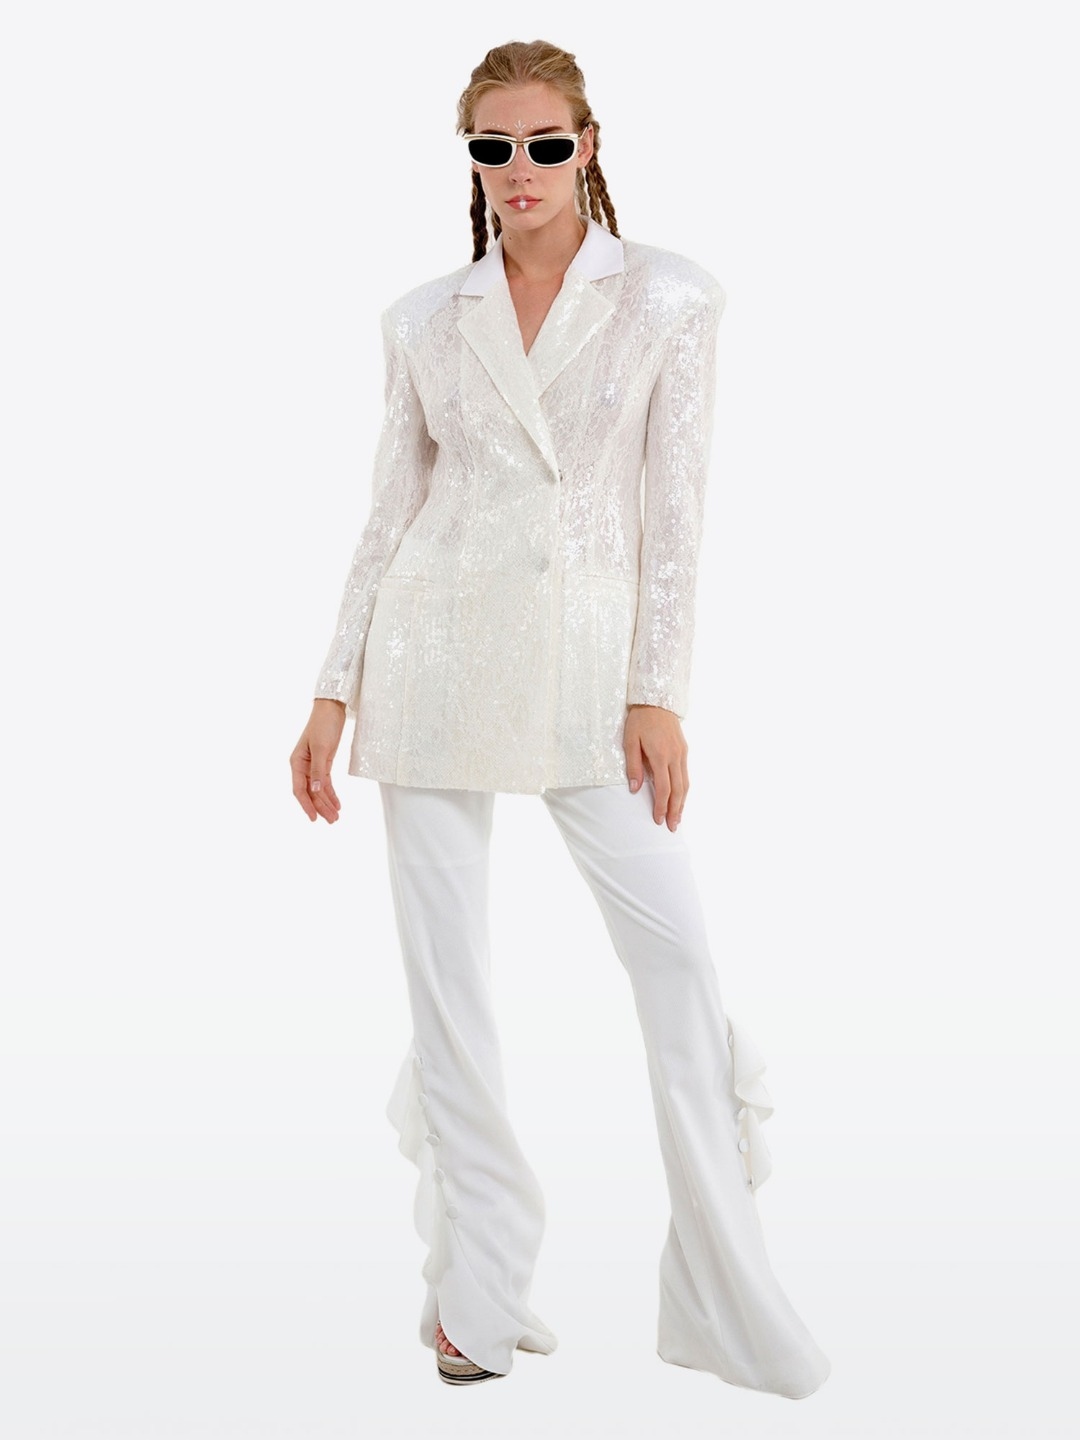 WHITE SPANGLE JACKET